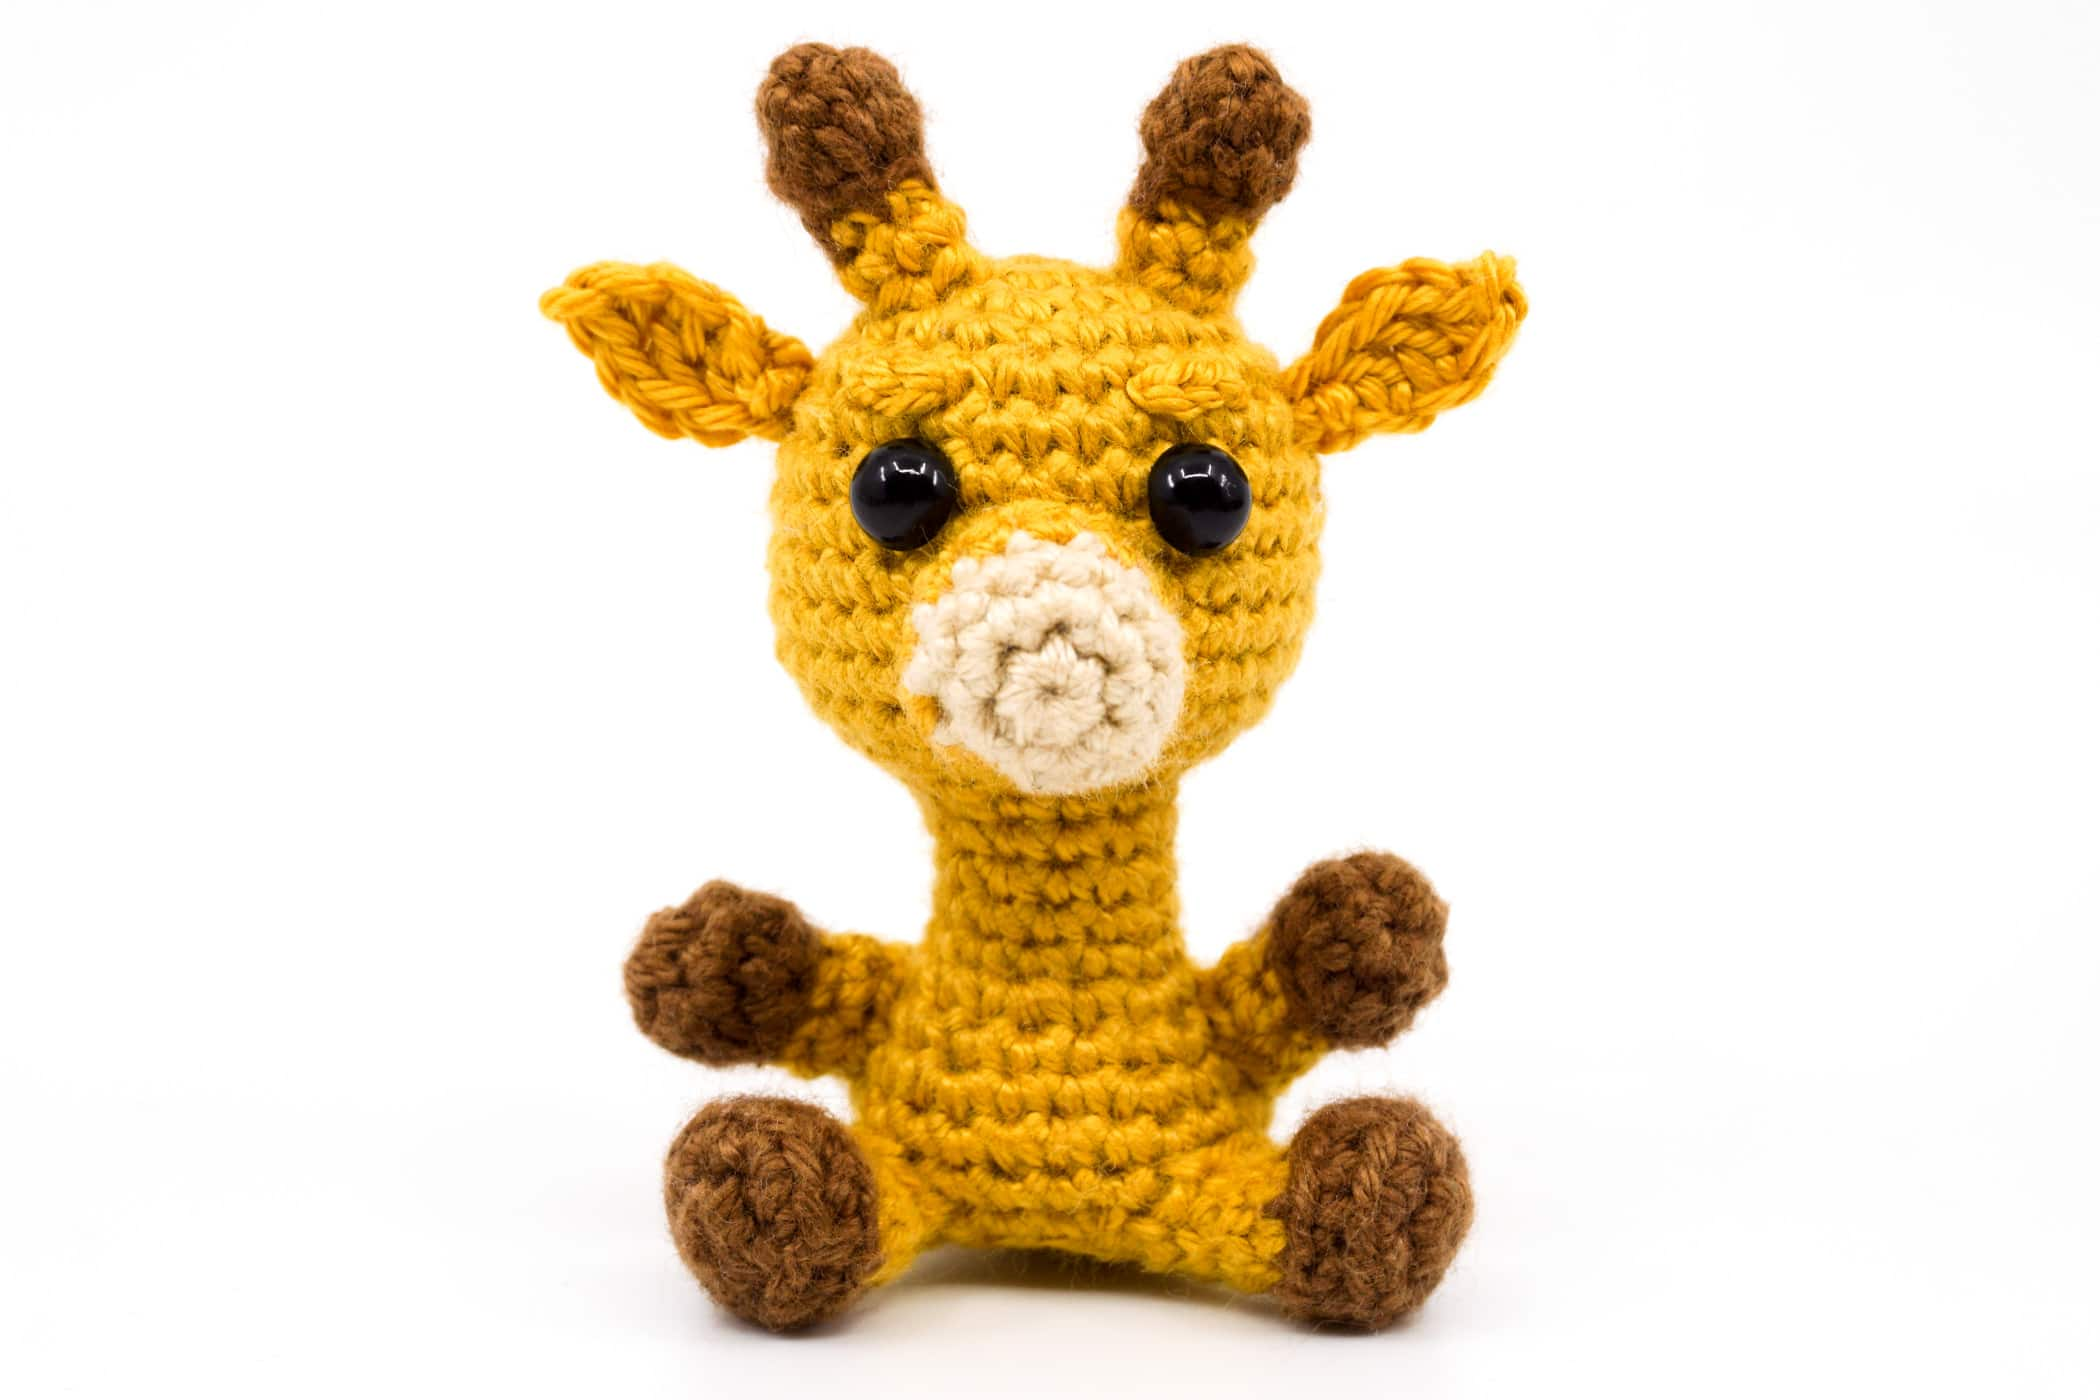 Hearty Giraffe amigurumi pattern - Amigurumi Today | 1400x2100